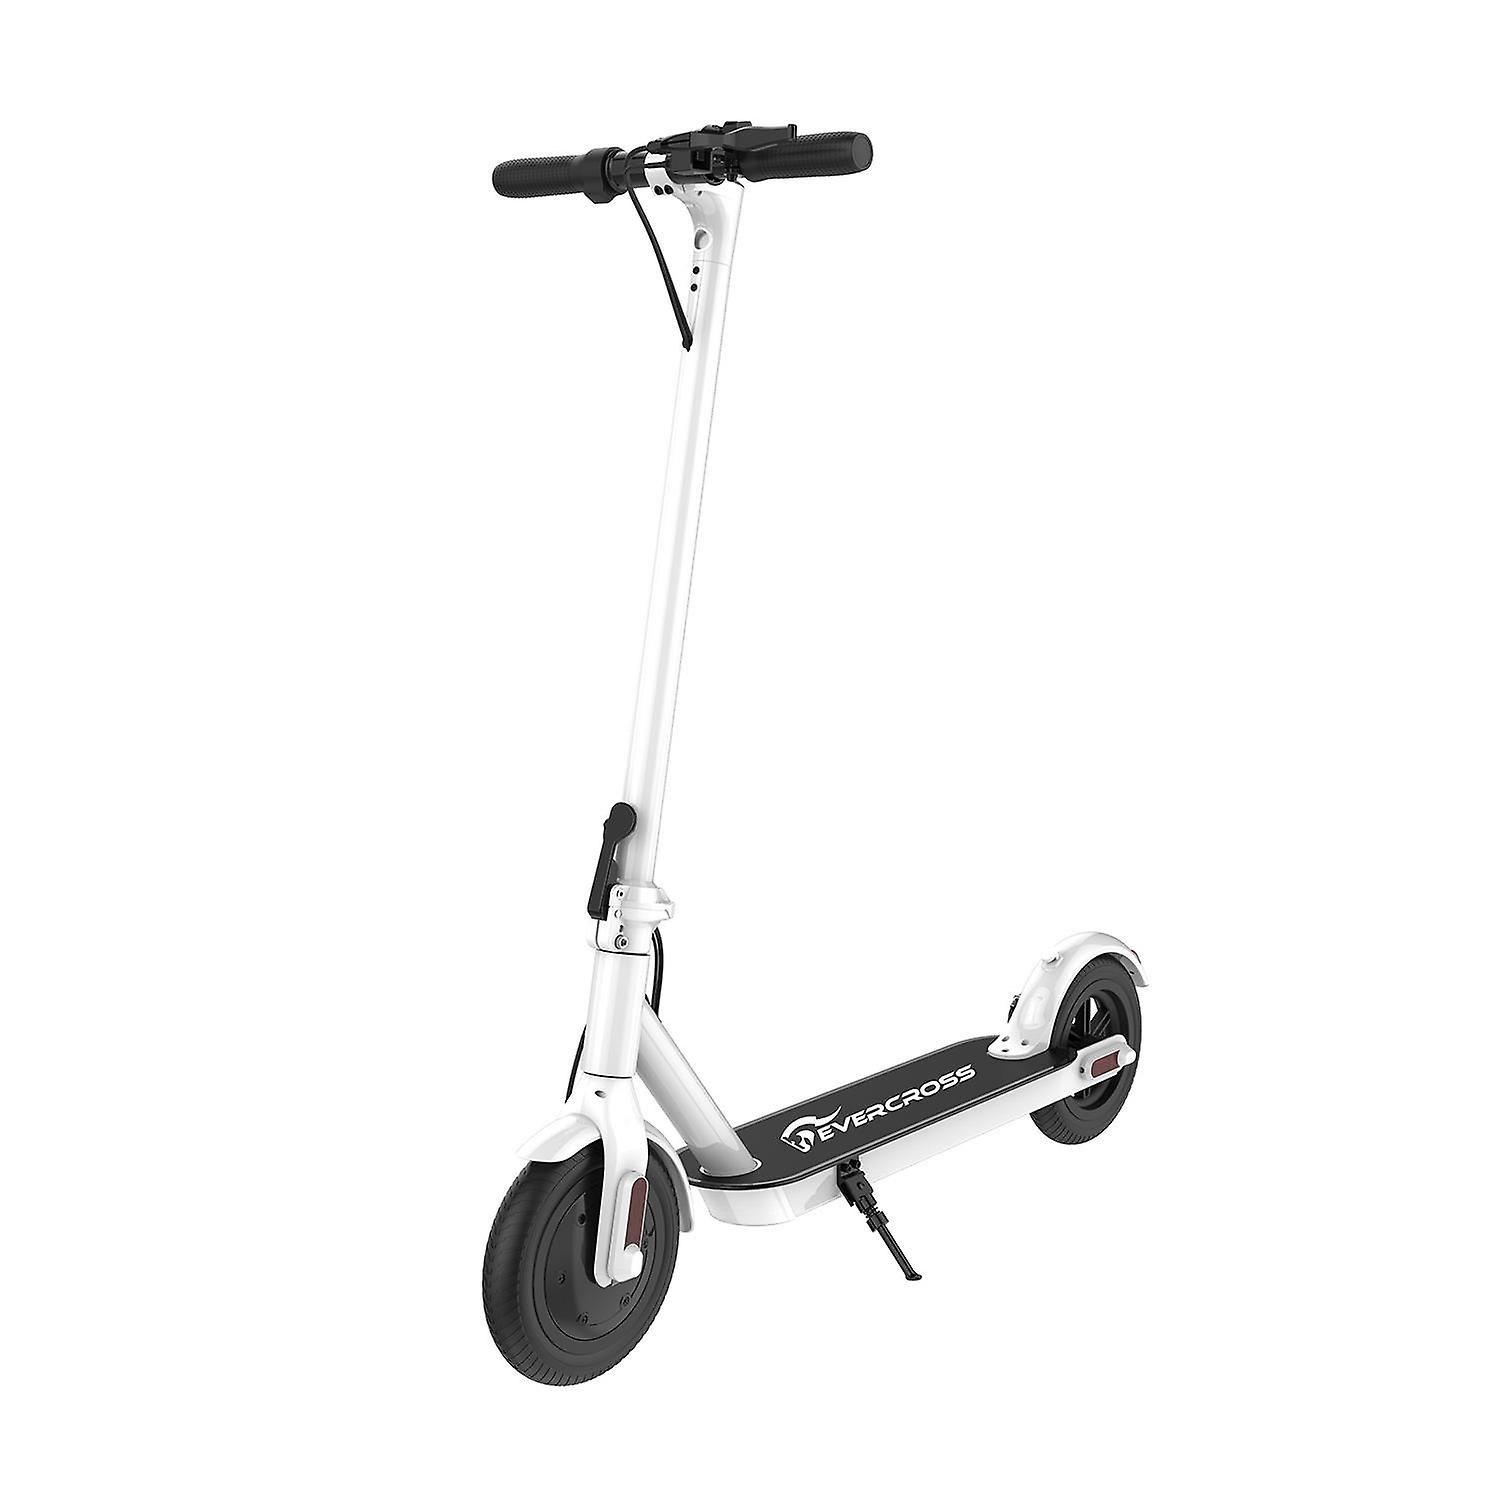 COLORWAY Electric Scooter Adult, 6Ah 25Km Long-Range Battery, 250W Motor Up to 25 km/h, 8.5 Inch Solid Rubber Tire, Foldable E-Scooter Portable &Lightweight Design